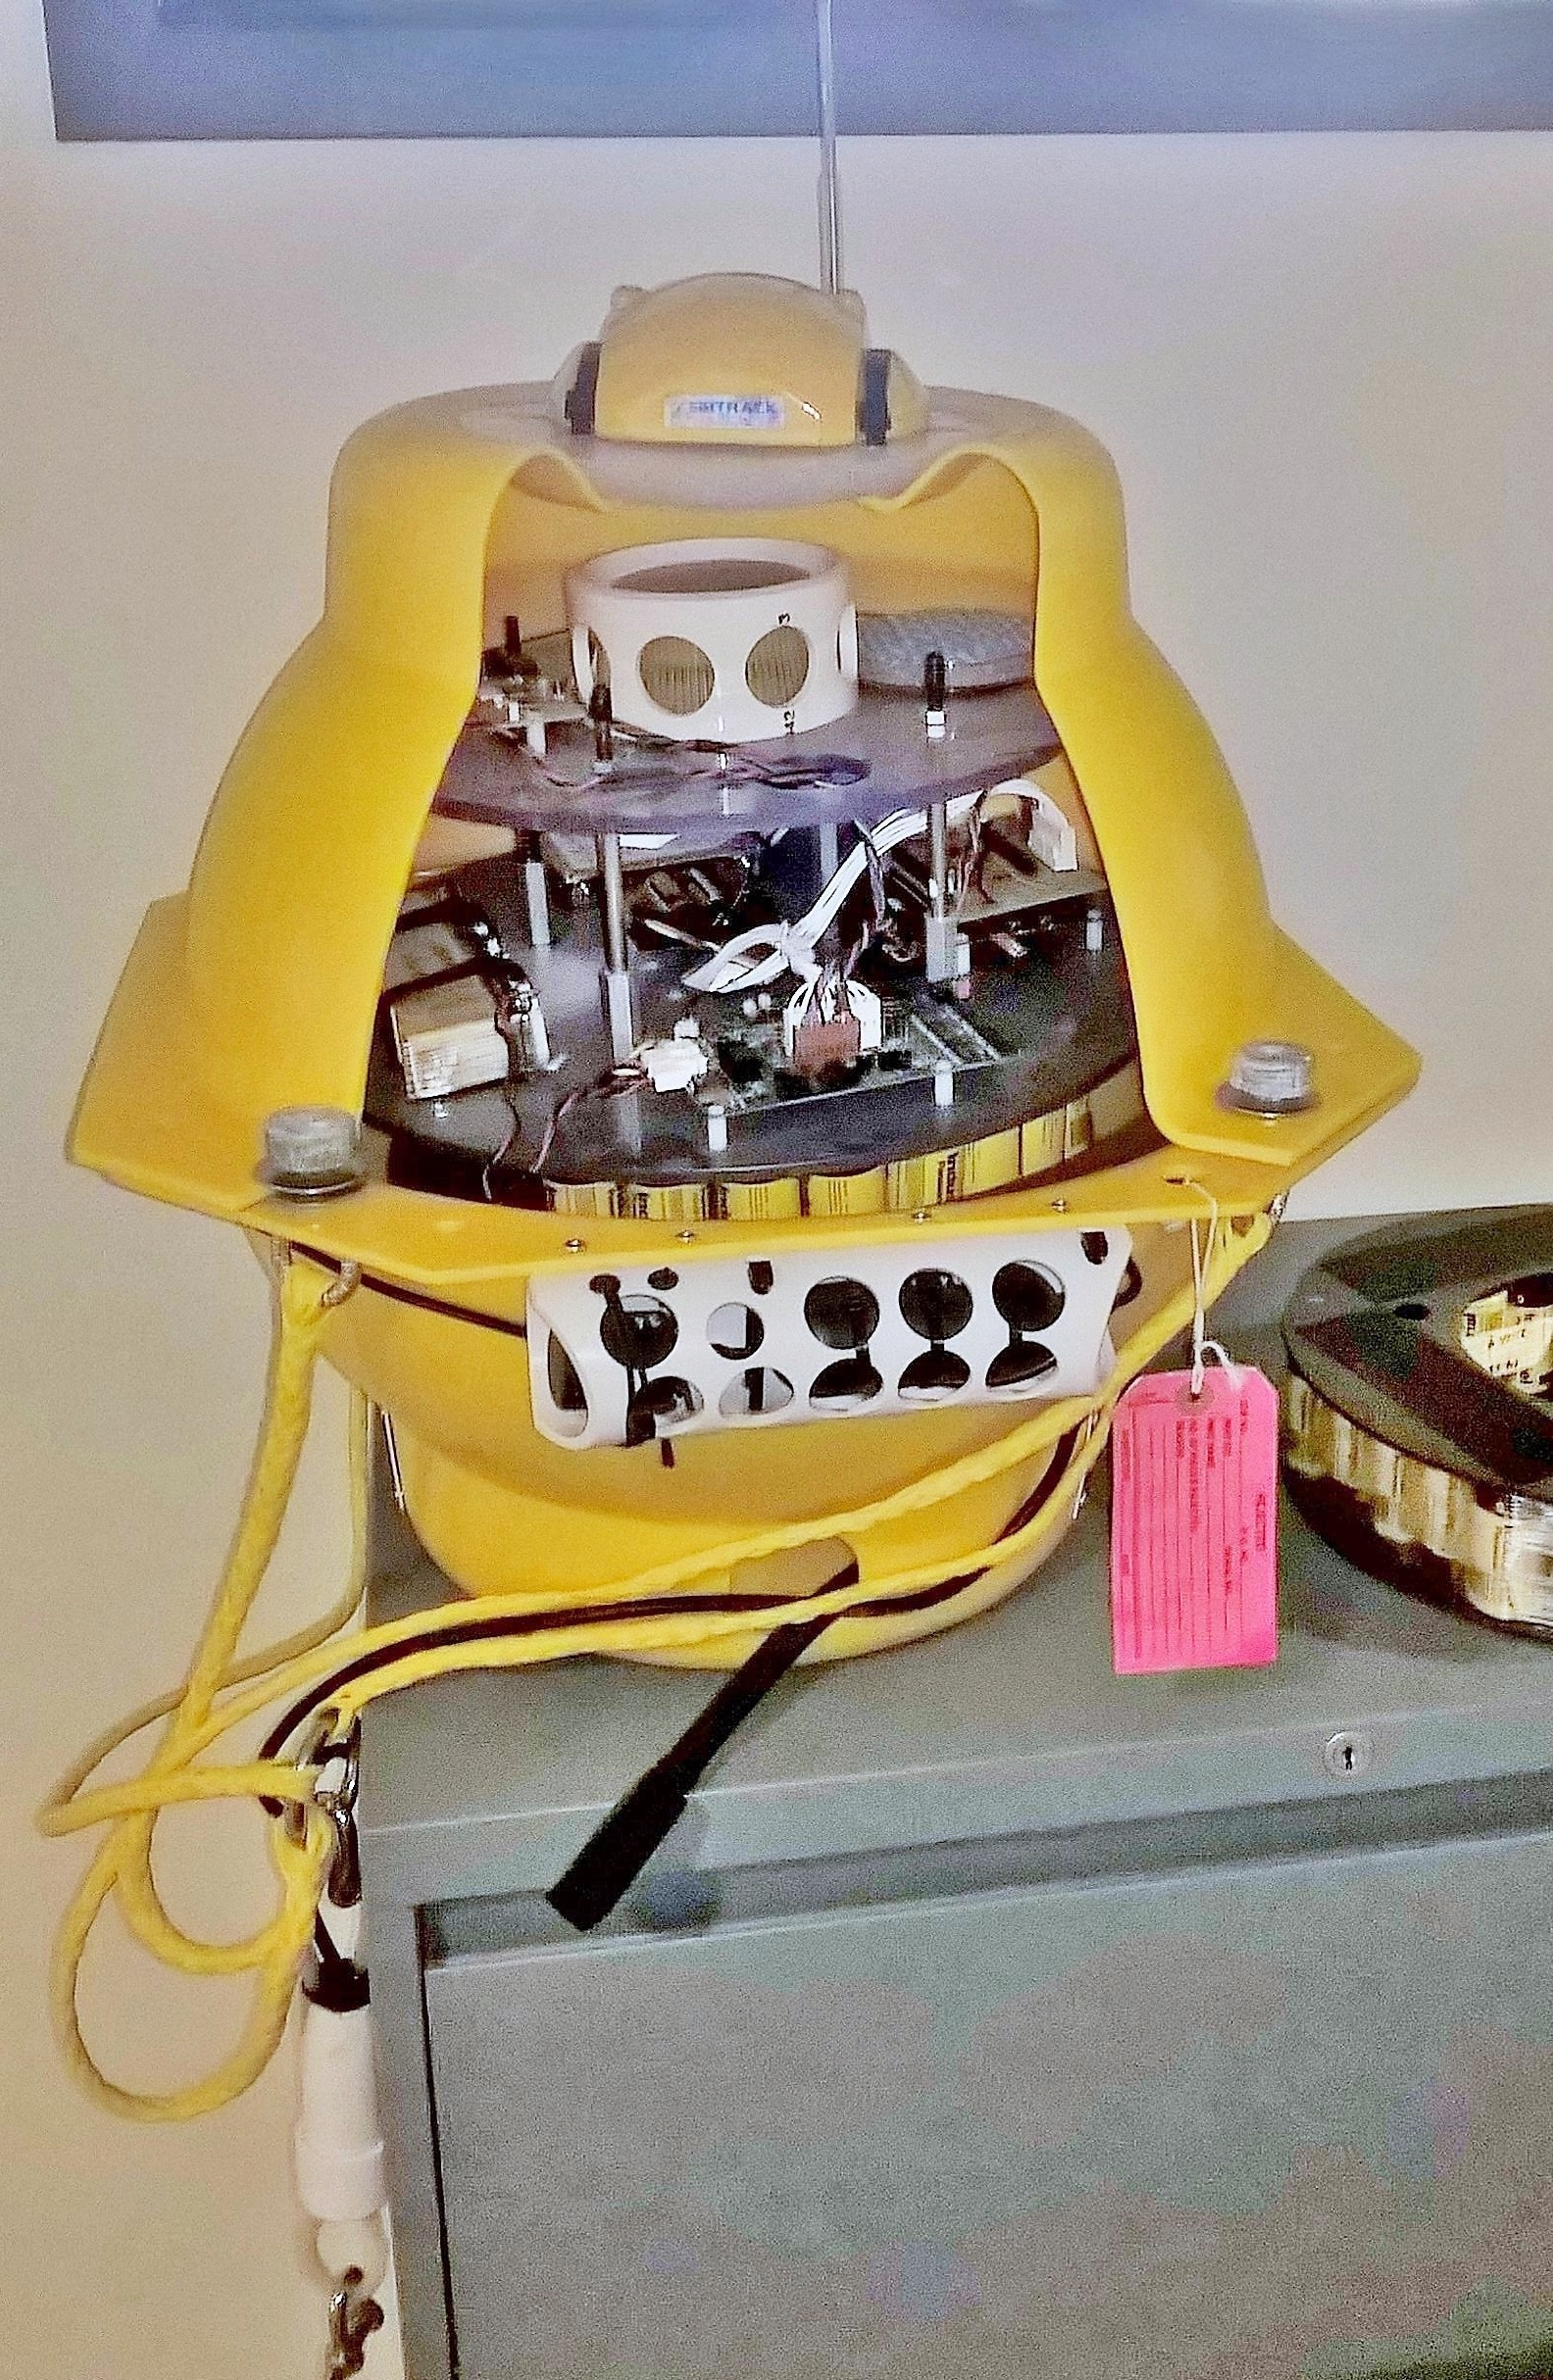 The ceramic hydrophone is stored in a white cradle to front side of the float. The float has been cut away to show the internal electronics and some of the battery storage.